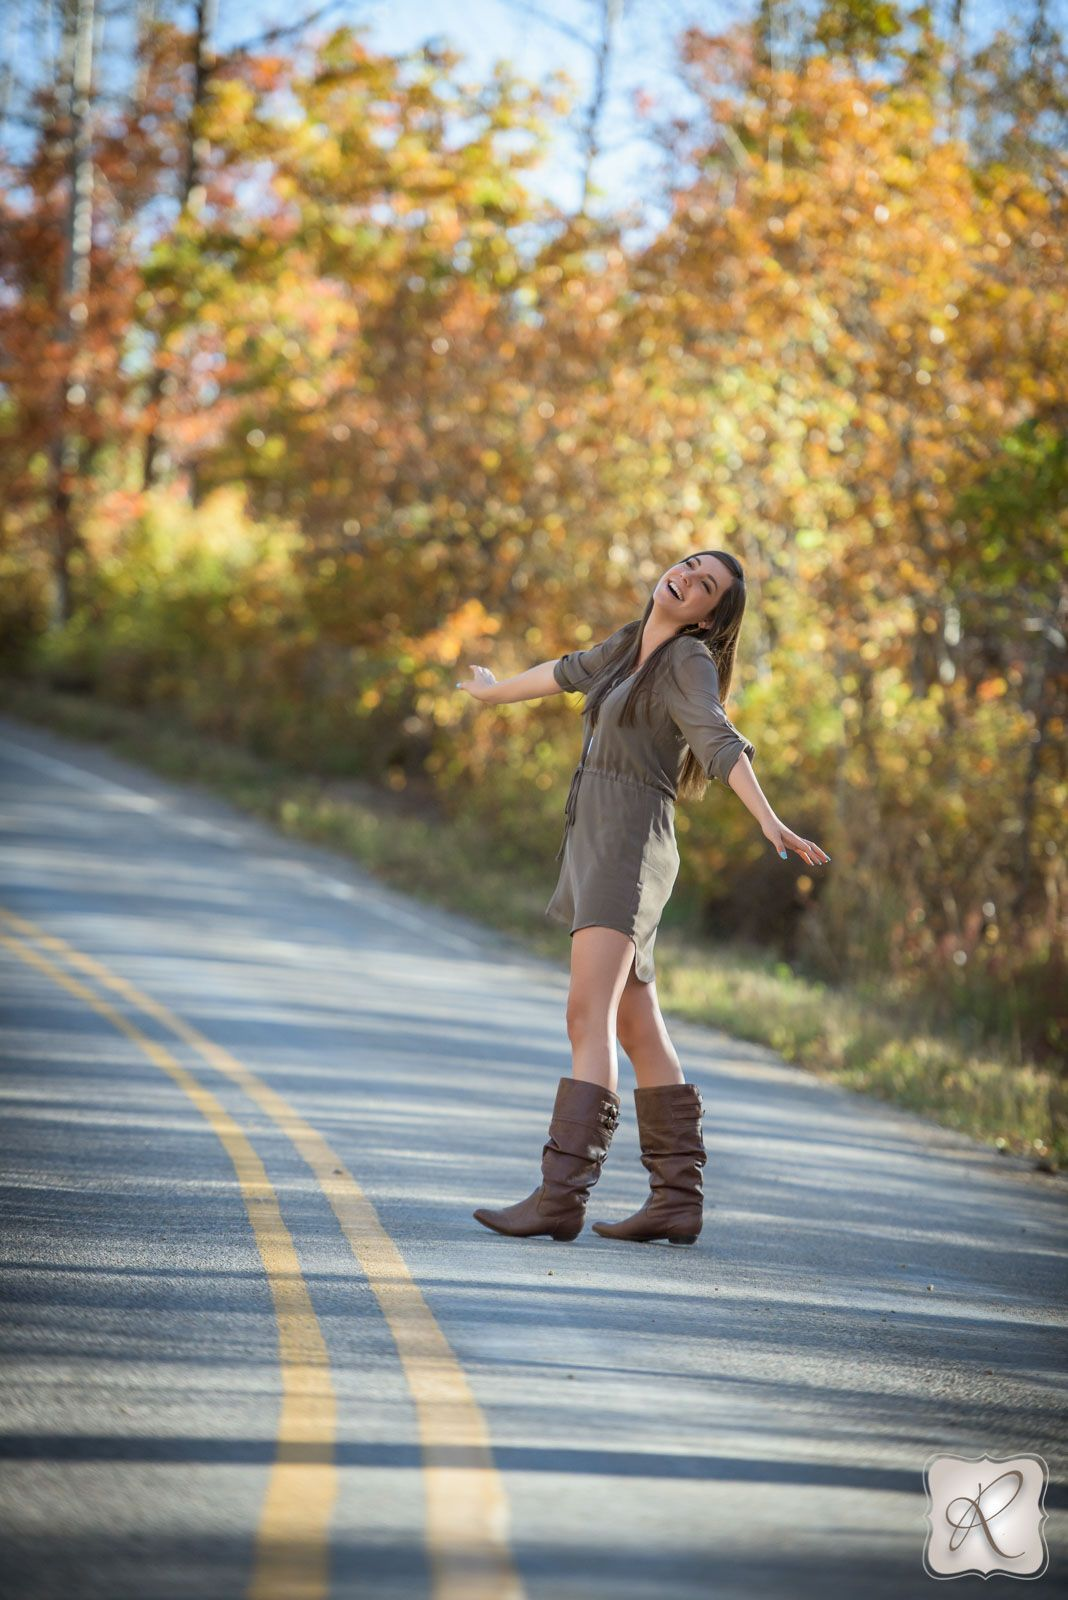 fall senior portraits in the road with changing leaves girl in cute dress dancing in the road. Black Bedroom Furniture Sets. Home Design Ideas